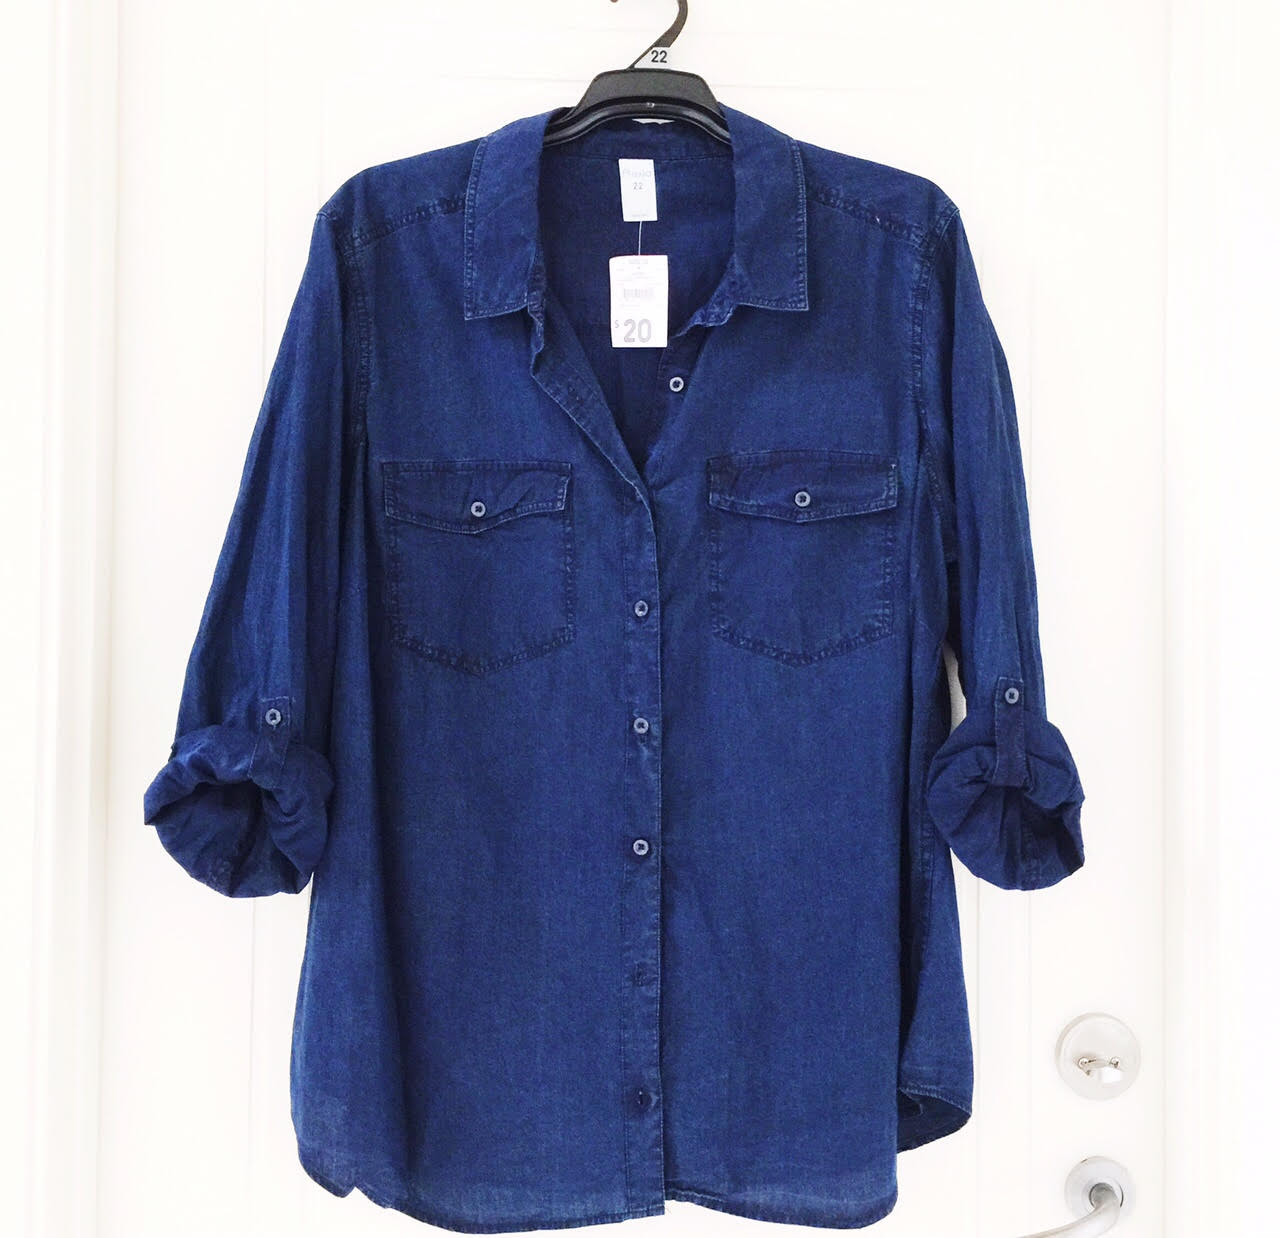 Denim shirt from Kmart - $20!